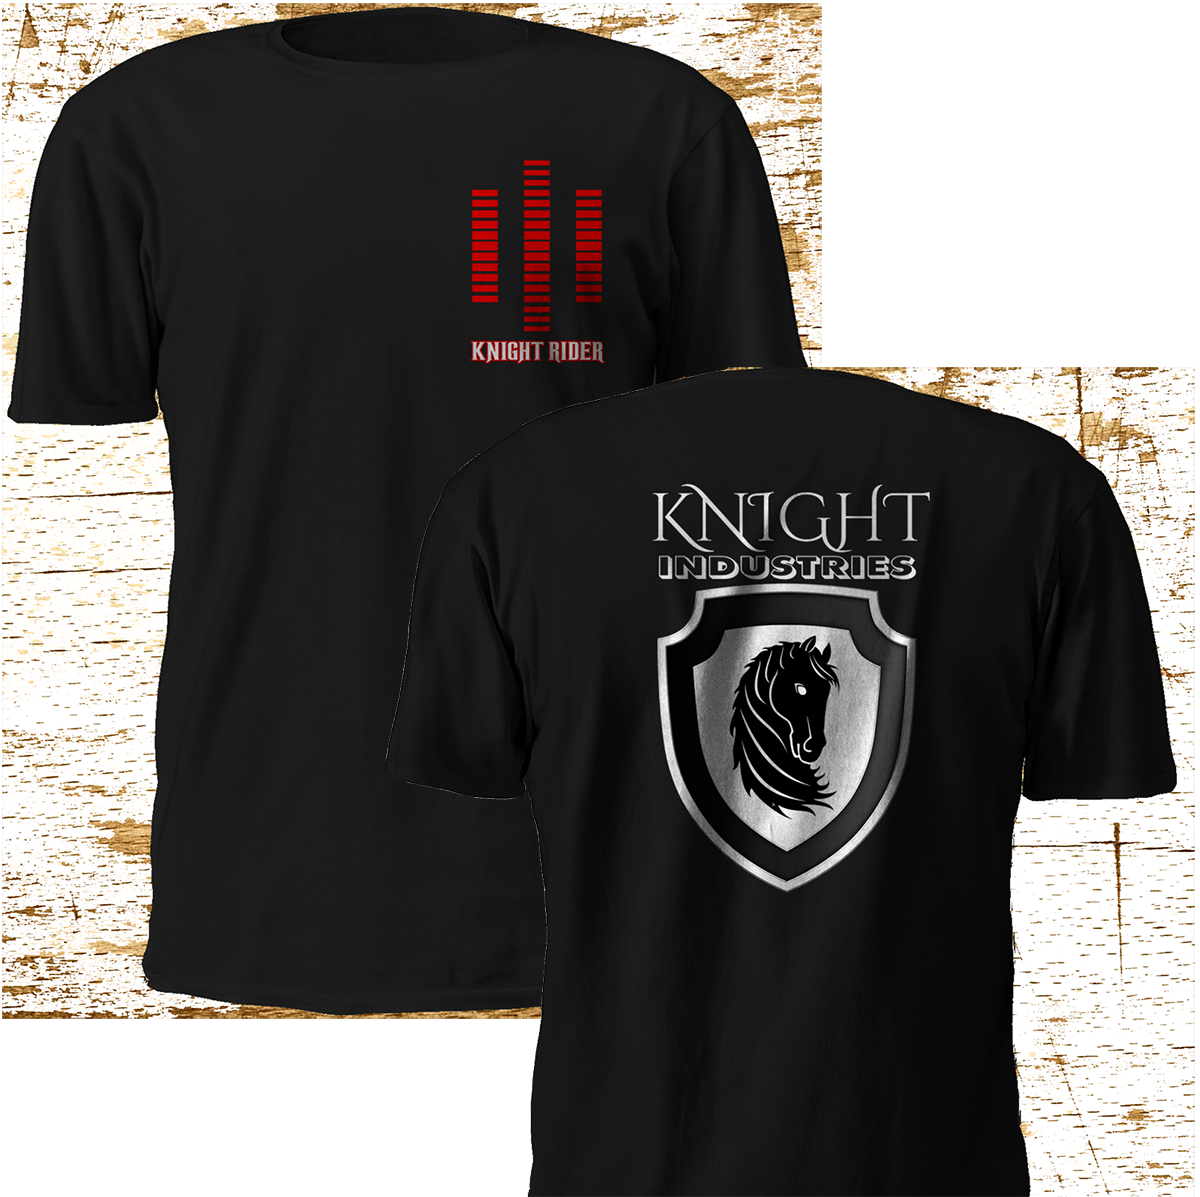 2019 Fashion Double Side New Rare Knight Rider Kitt Industries Michael Black Tv T-Shirt S-3Xl Unisex Tee